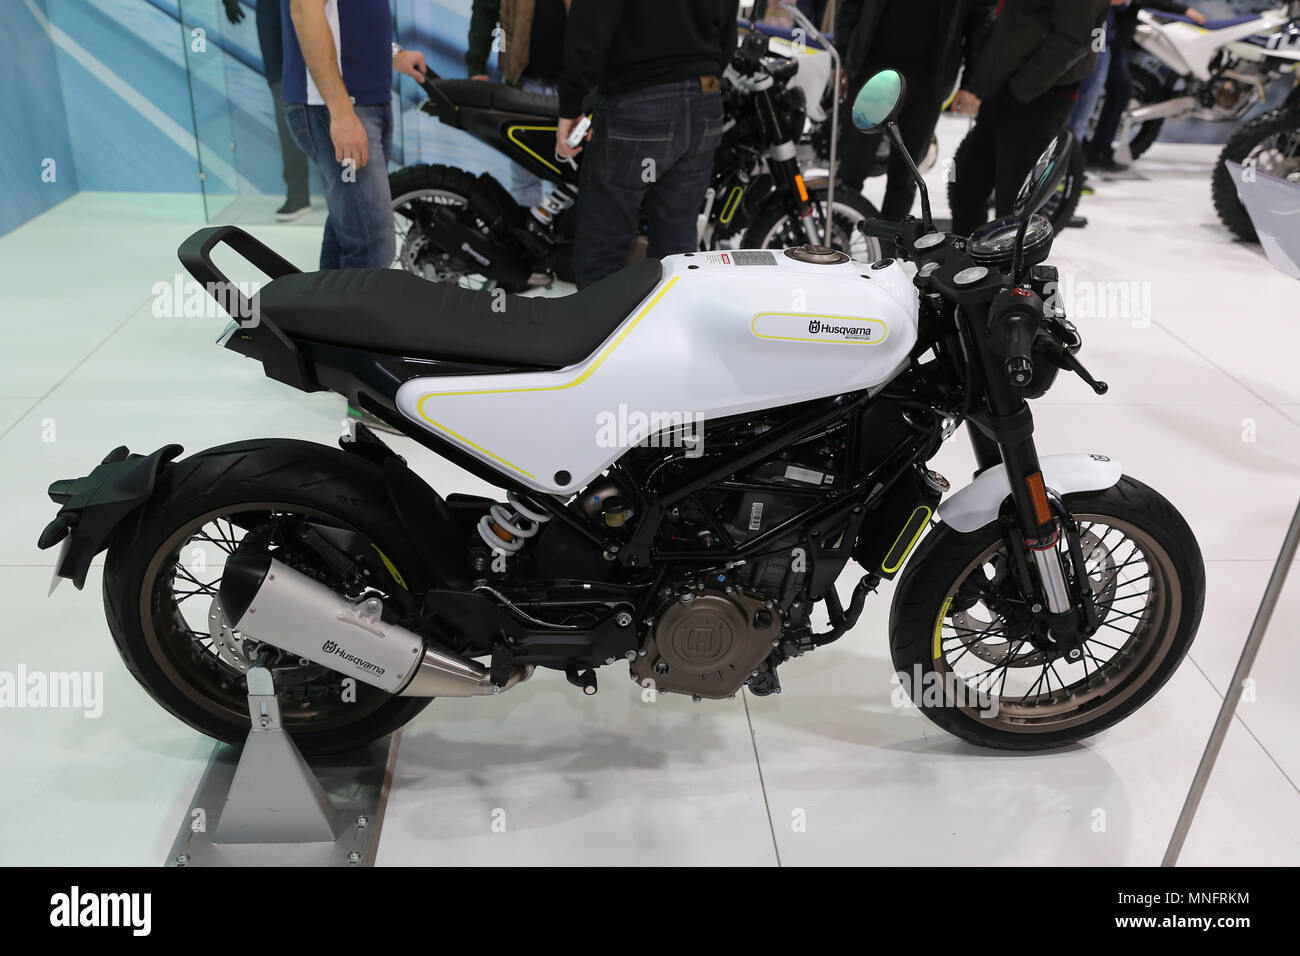 ISTANBUL, TURKEY - FEBRUARY 25, 2018: Husqvarna Motorcycle on display at Motobike Istanbul in Istanbul Exhibition Center - Stock Image